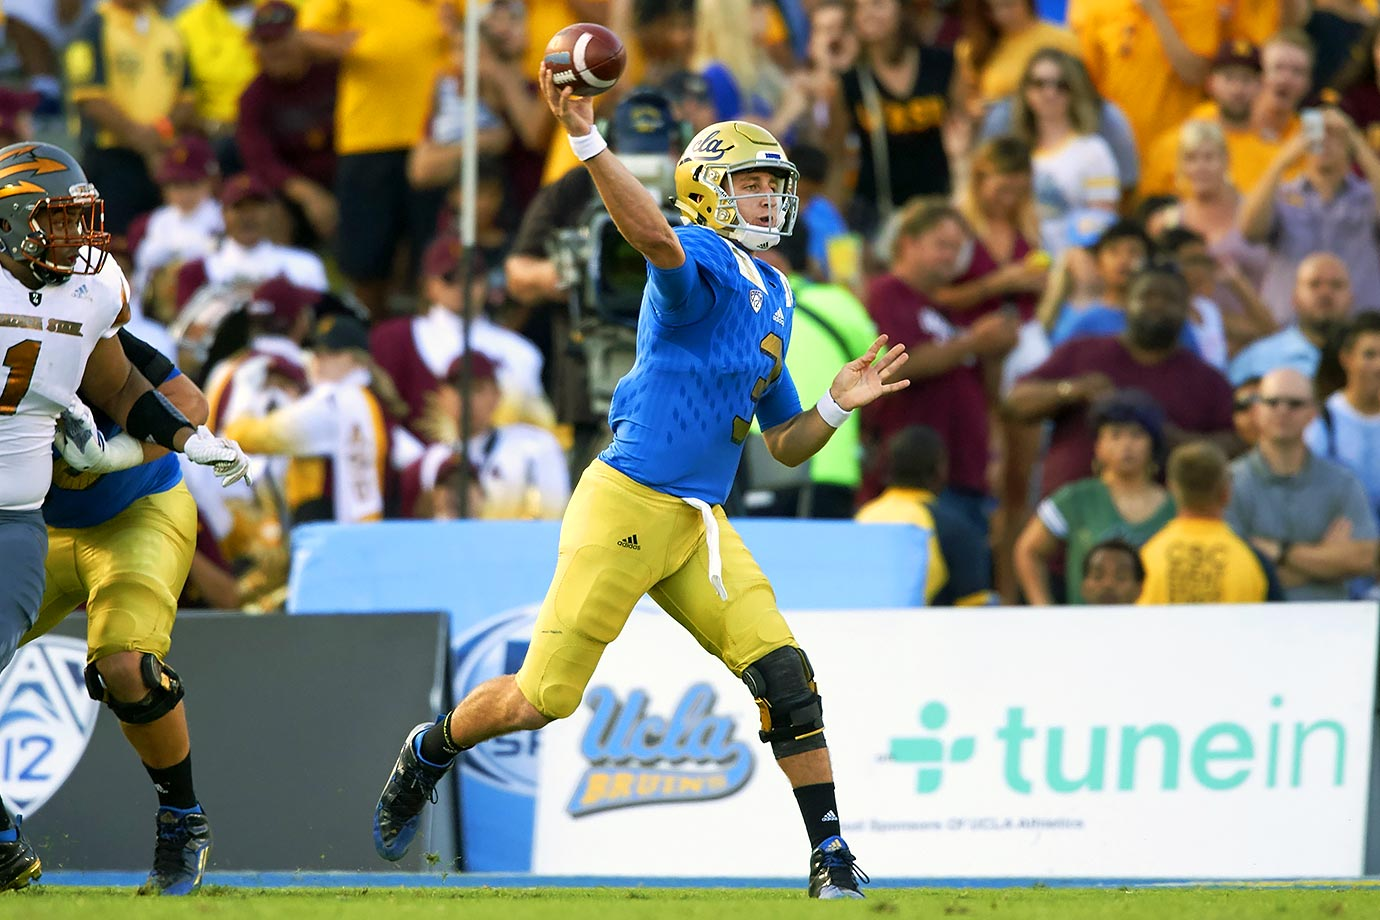 UCLA's first true freshman to start the season at quarterback, Rosen led UCLA to an 8–5 record and a bowl appearance en route to a Freshman All-America selection by USA Today. The Associated Press also named him the Pac-12 Newcomer of the Year.